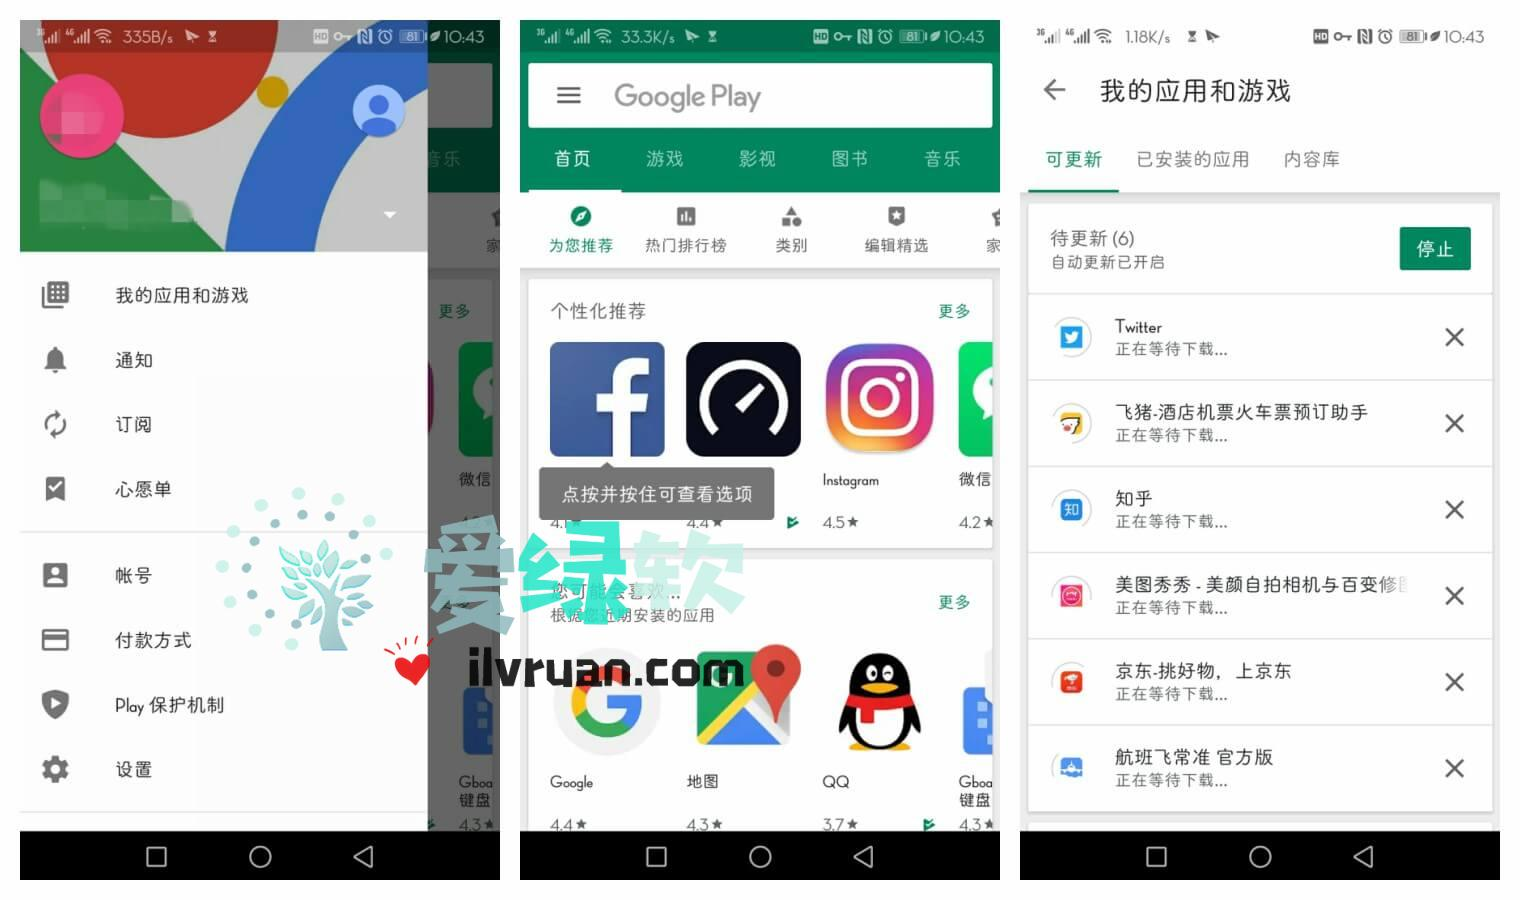 Android Google Store Play Store Google Play Store v16 0 16